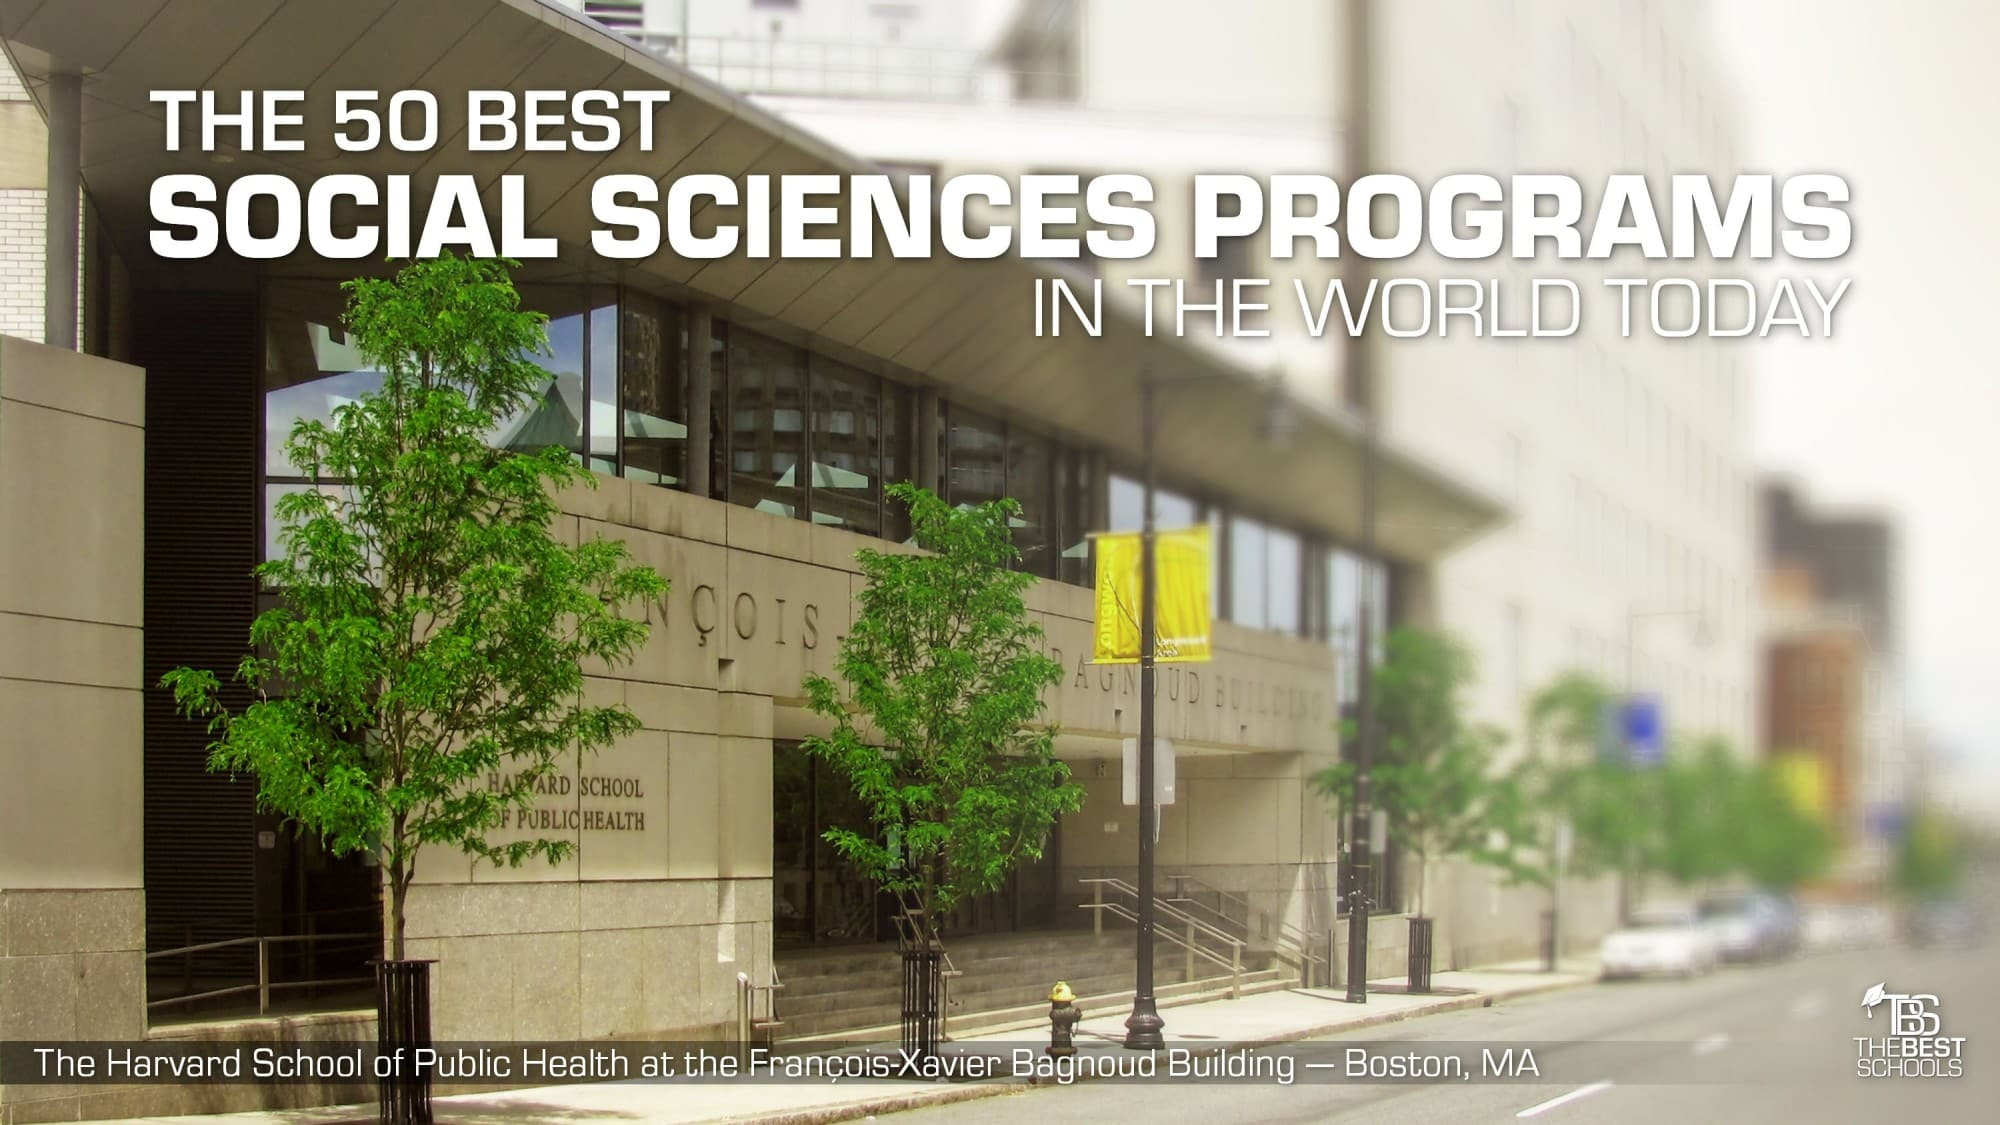 The 50 Best Social Sciences Programs In World Today Top Resources To Learn Electrical Engineering Online For Free Harvard School Of Public Health At Franois Xavier Bagnoud Building Boston